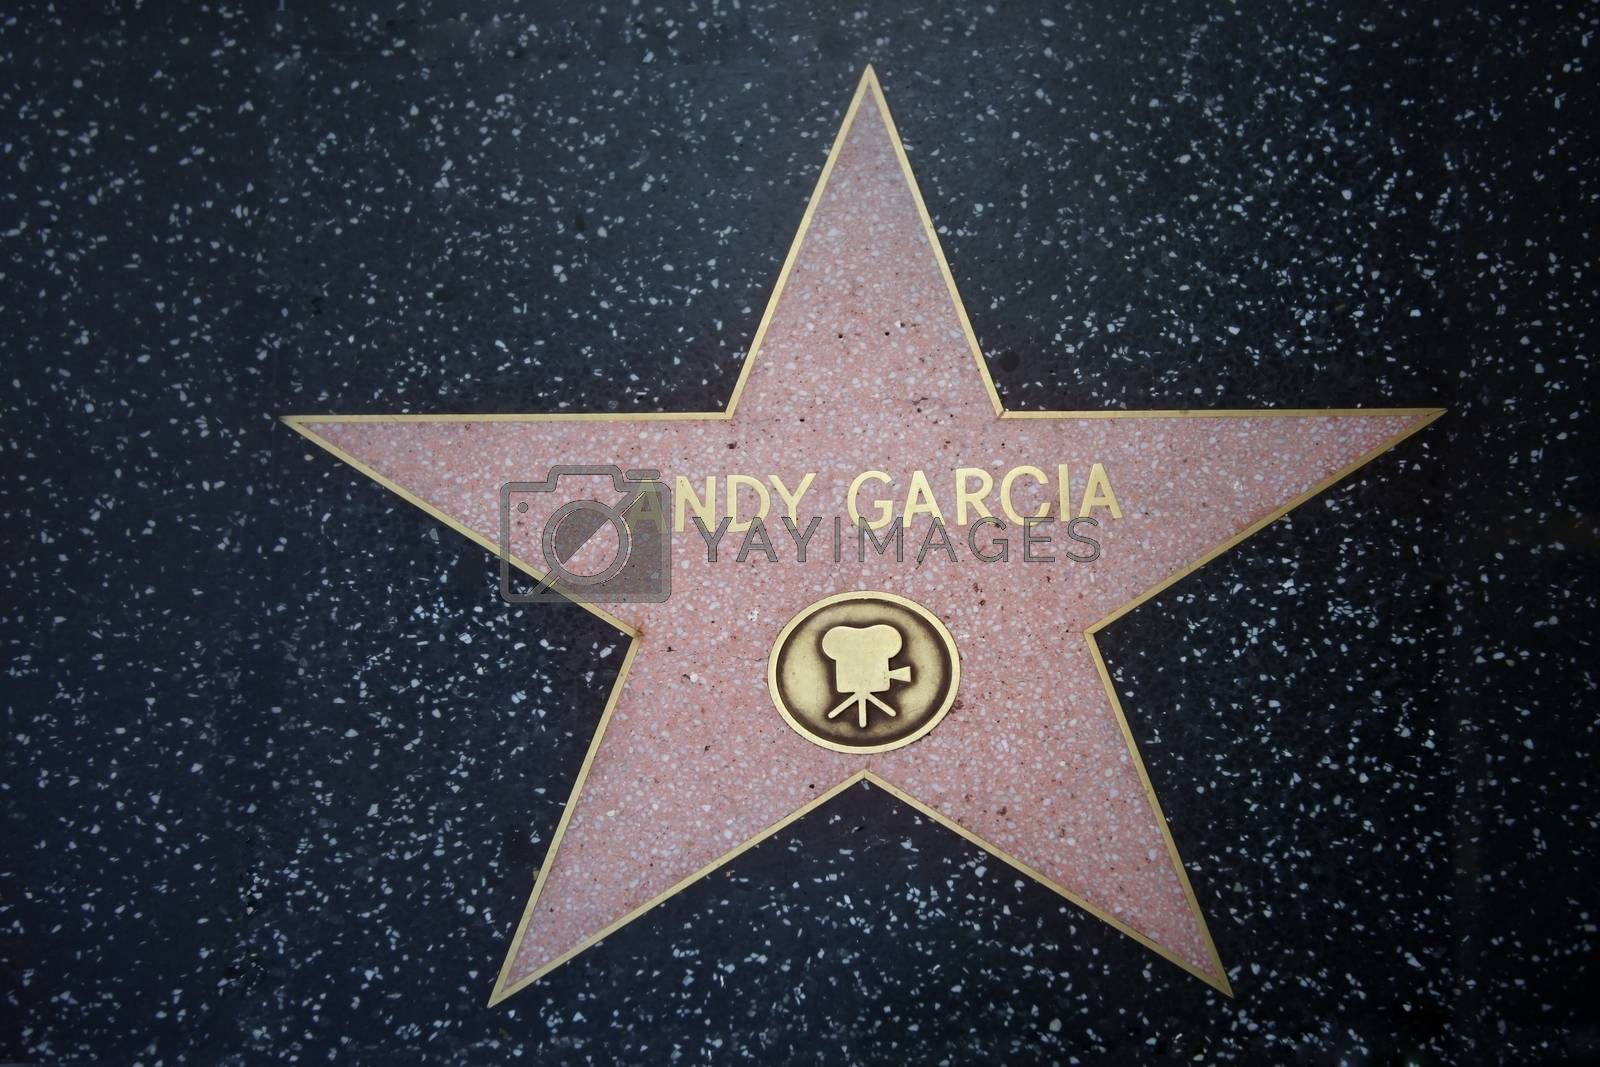 Hollywood, California, United States - September 18, 2011: Star of Andy Garcia at the pavement of the Walk of Fame in Hollywood. The star is reserved for the name of a celebrity from the movie industry.